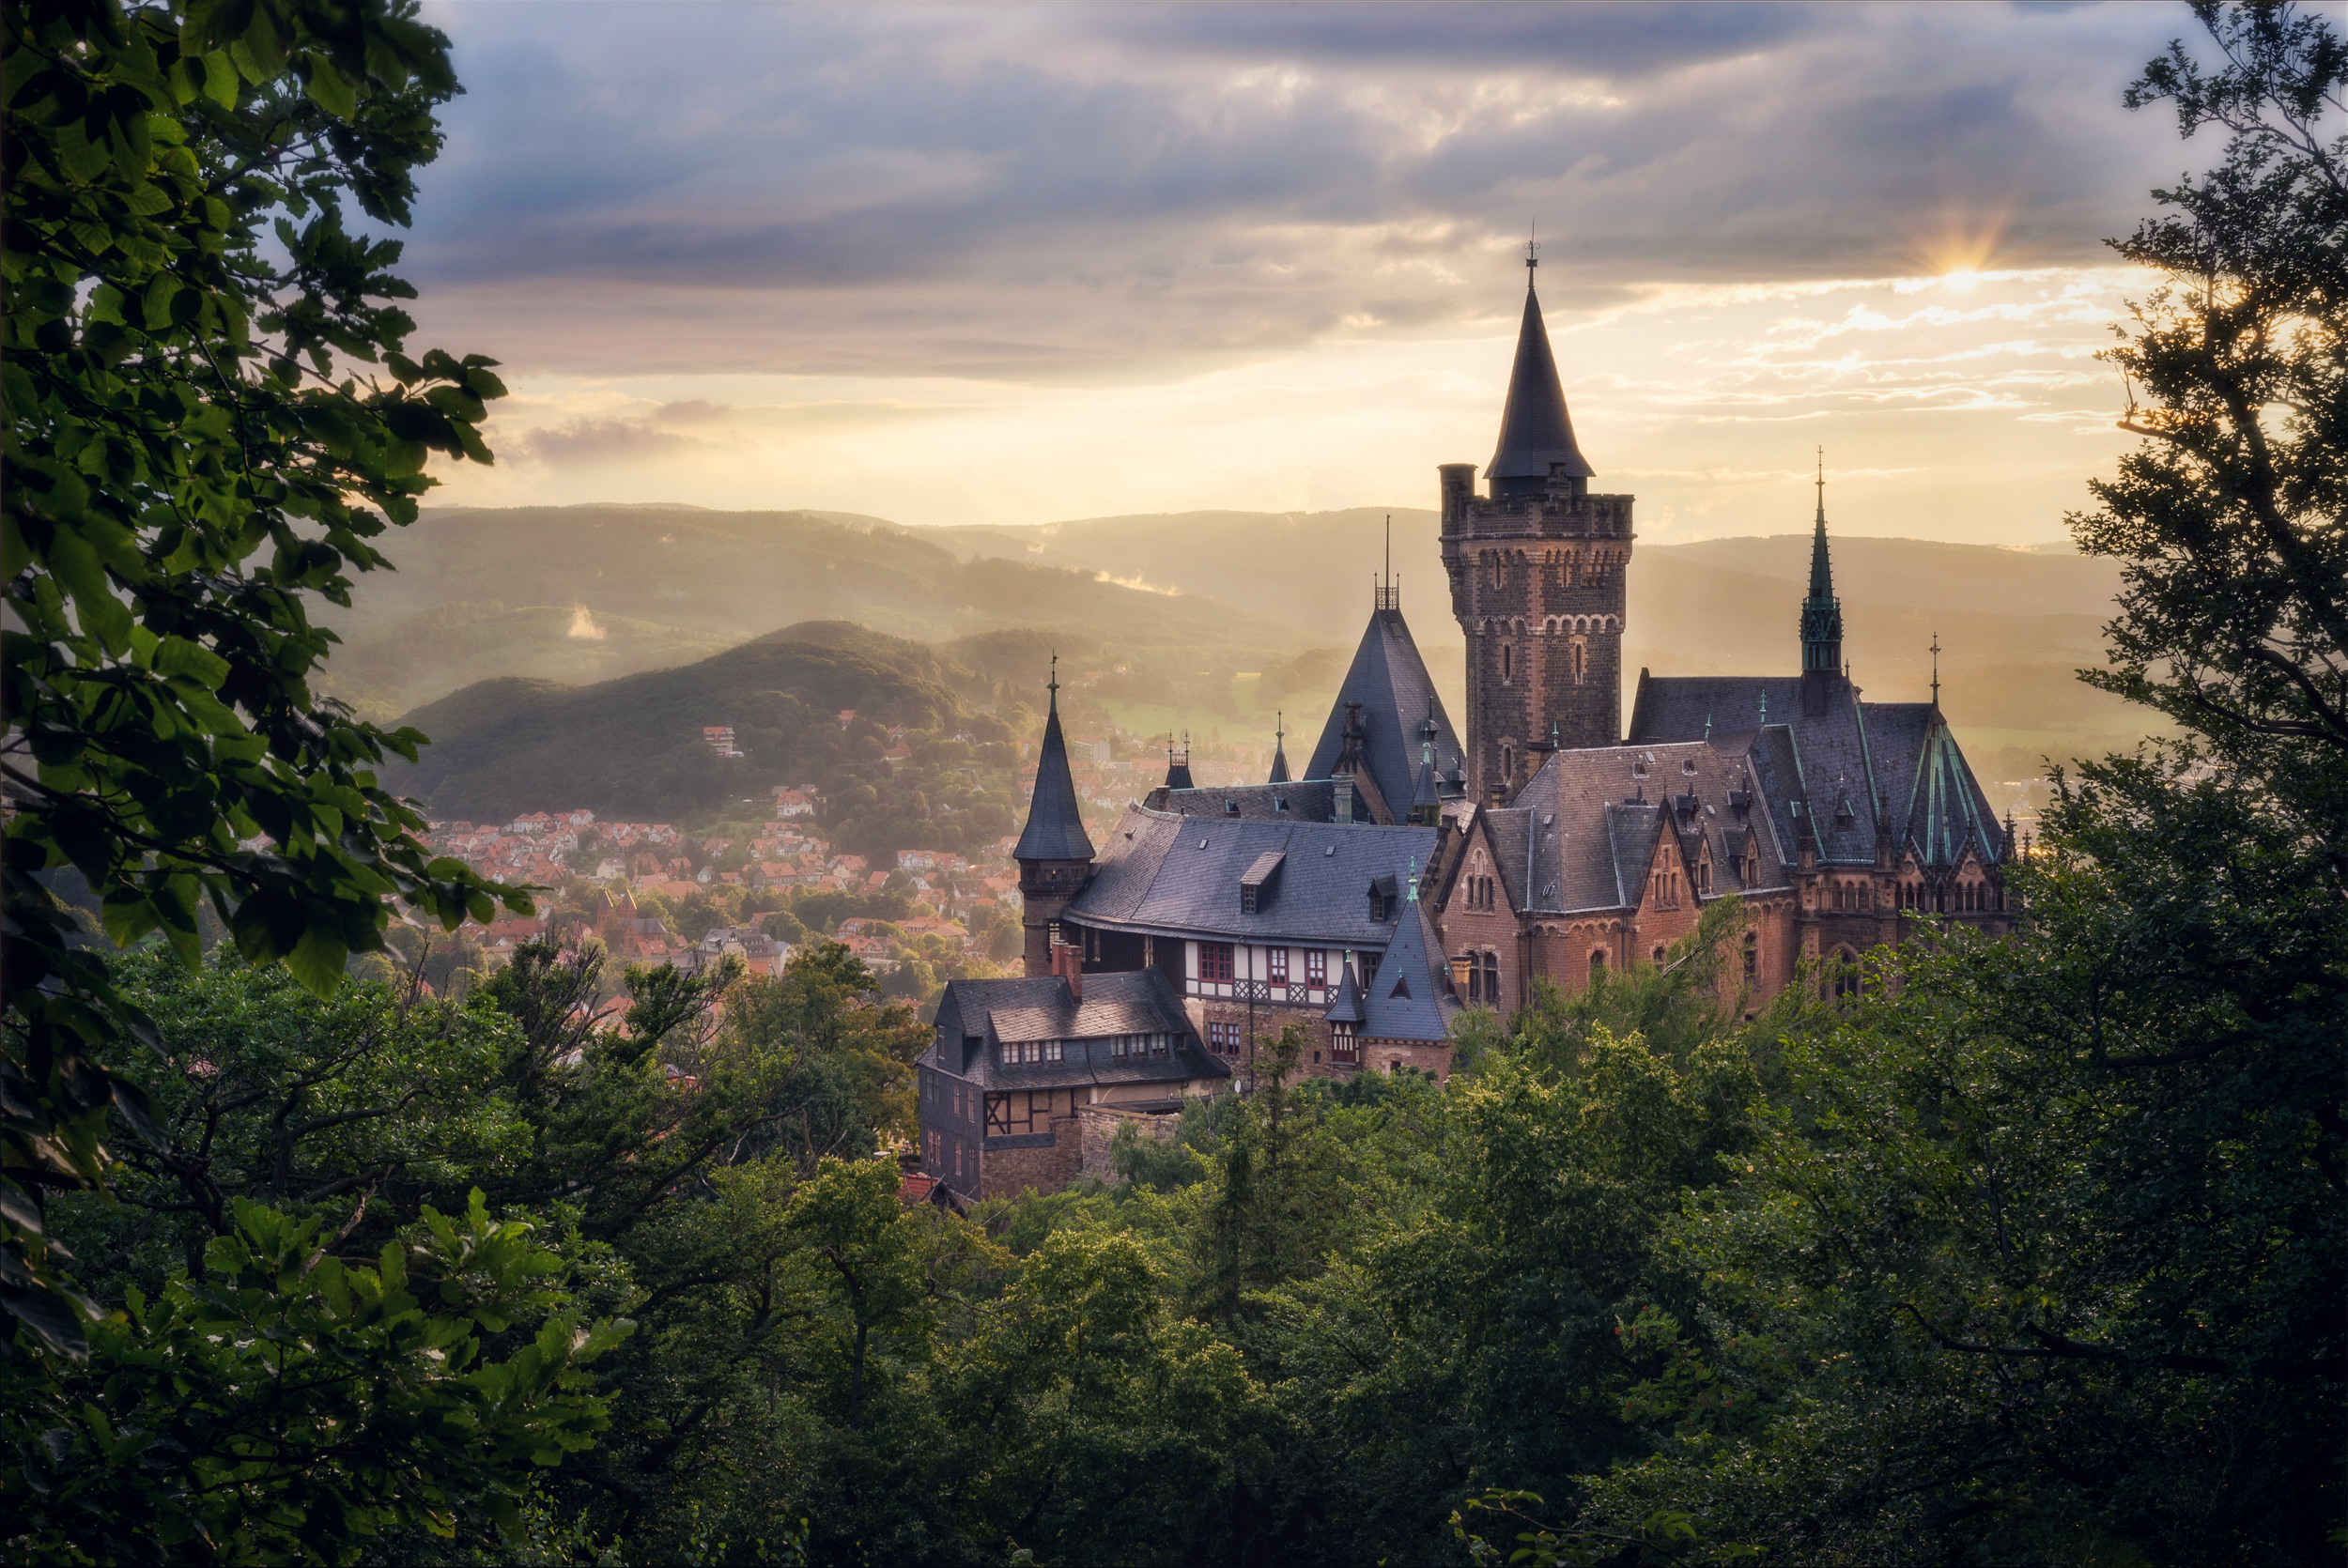 A beautiful castle overlooking Wernigerode in the Harz Mountains.